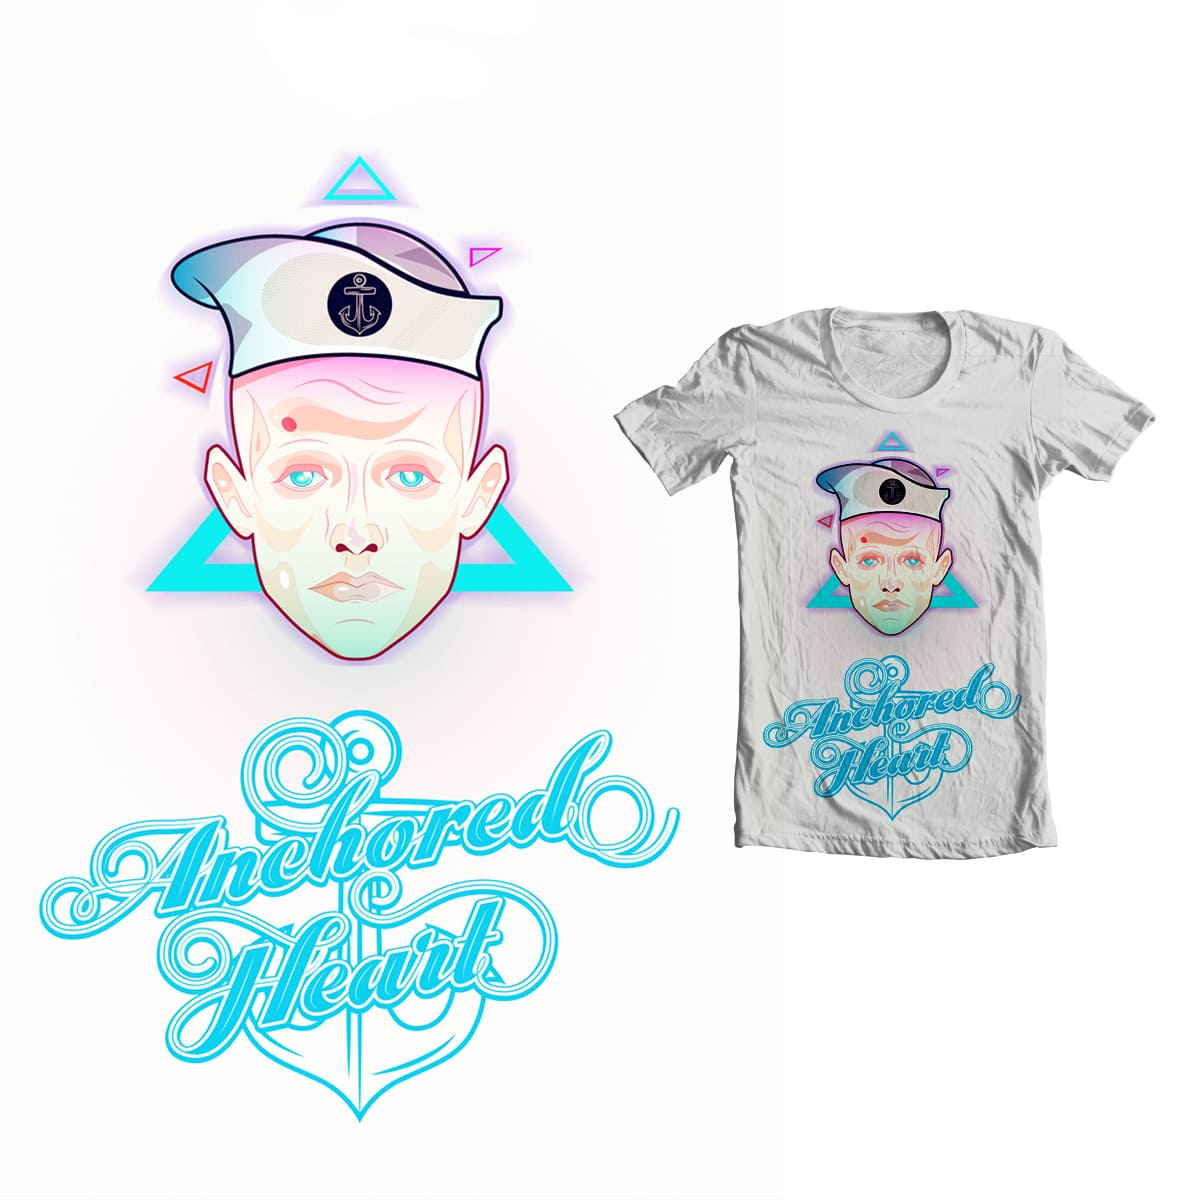 Anchored Heart by Pellisco on Threadless